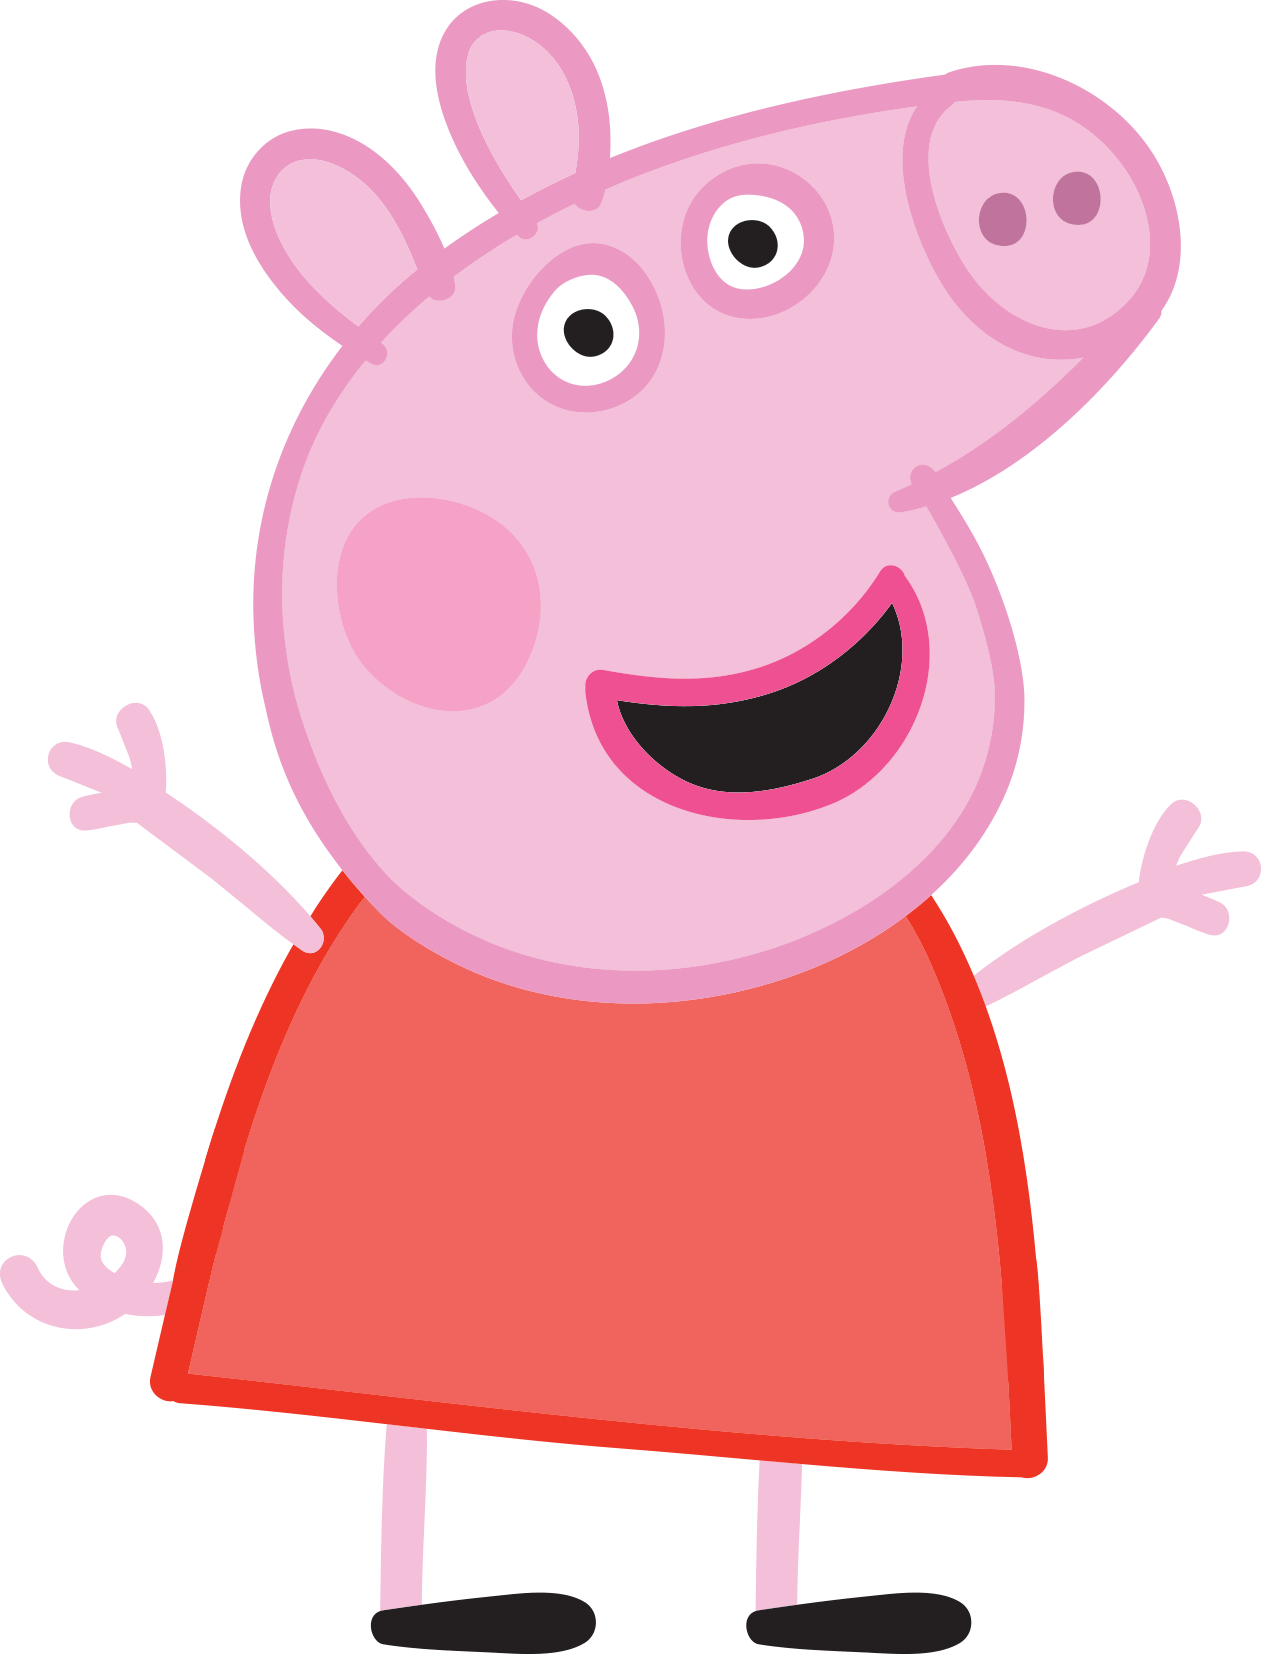 Peppa pig bailarina png. Mask pigs adventure iron